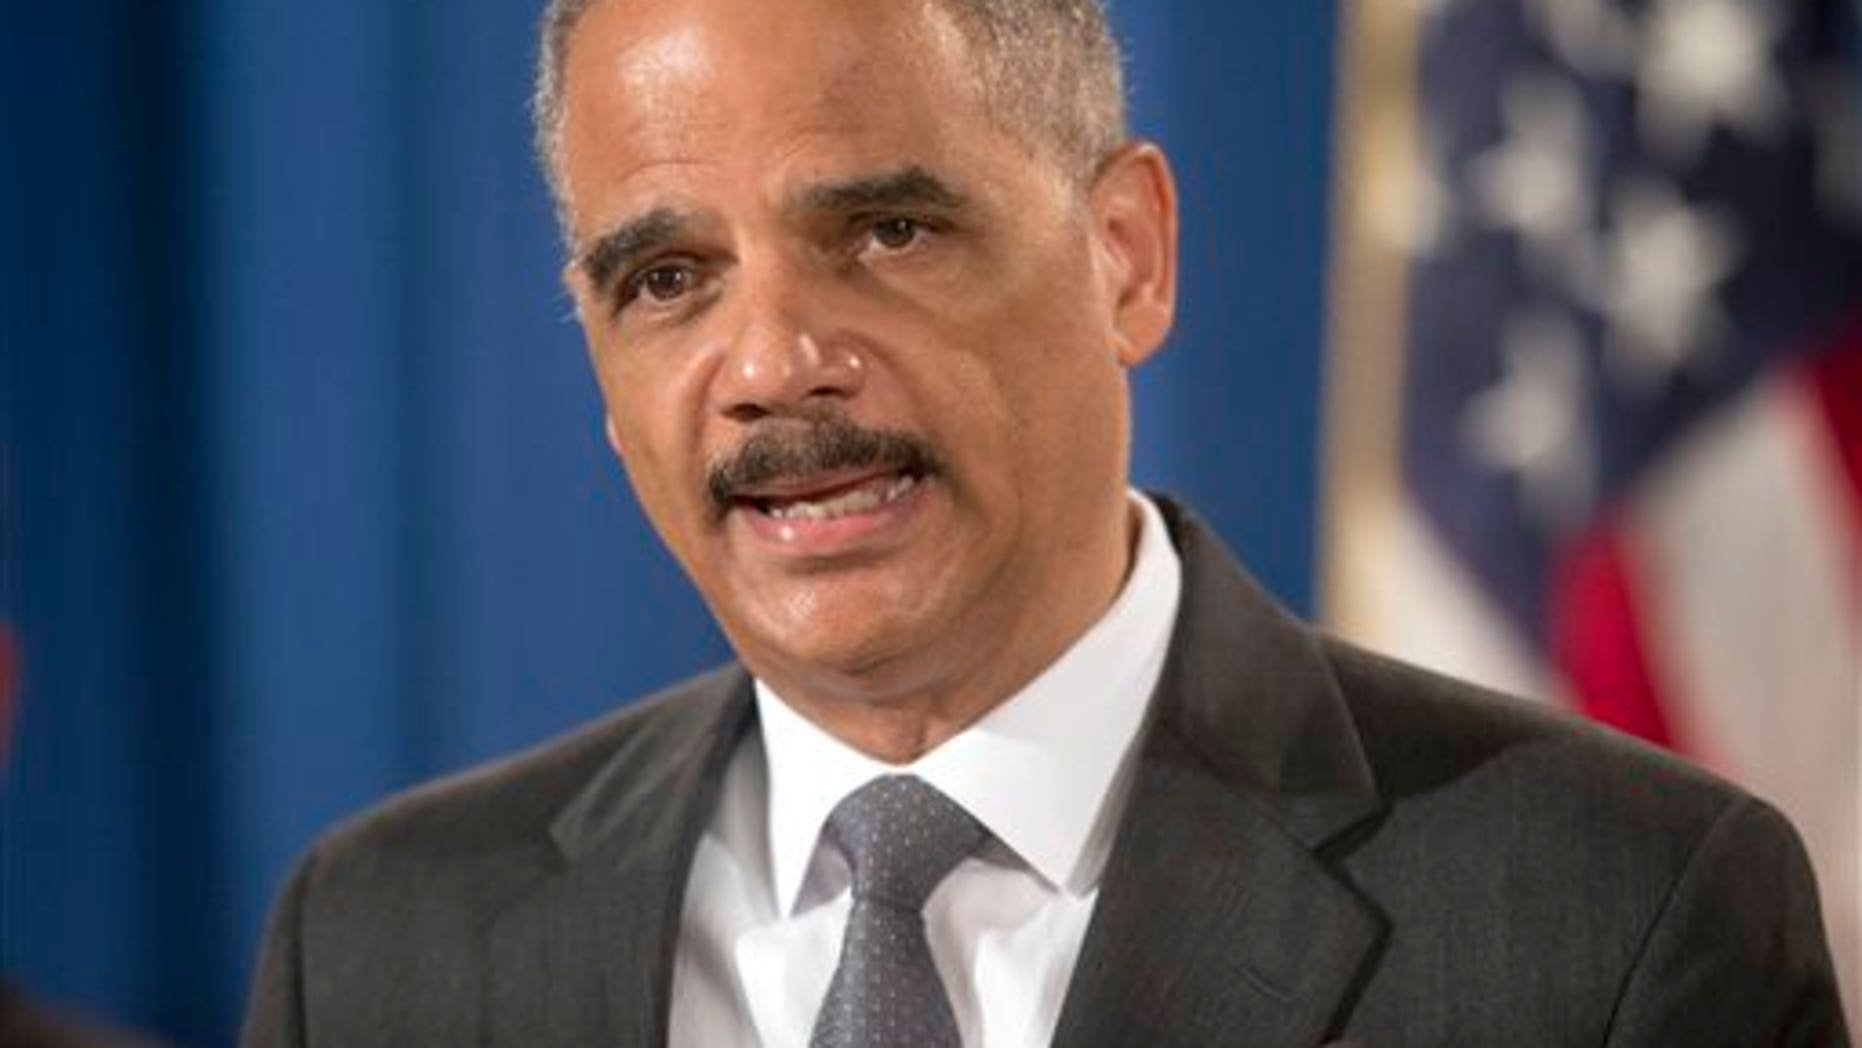 Attorney General Eric Holder announces at the Justice Department in Washington Monday, July 14, 2014, that Citigroup will pay $7 billion to settle an investigation into risky subprime mortgages. (AP Photo/Pablo Martinez Monsivais)